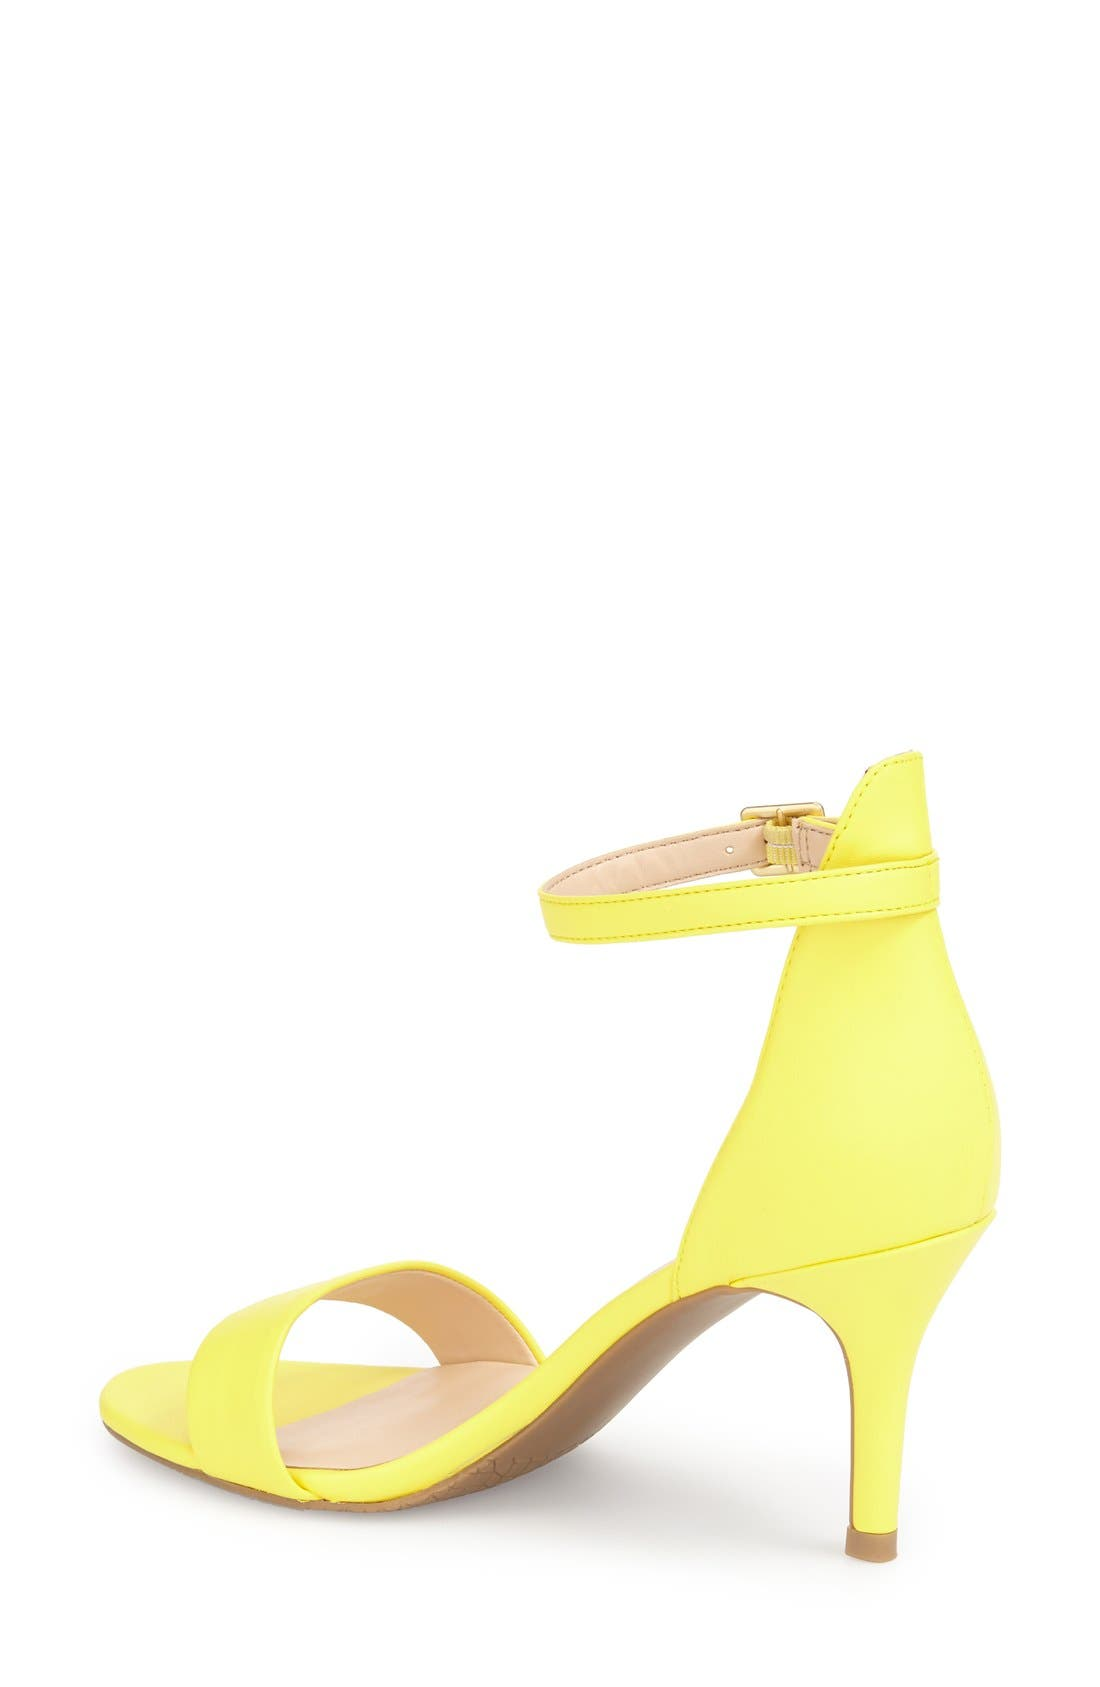 'Luminate' Open Toe Dress Sandal,                             Alternate thumbnail 92, color,